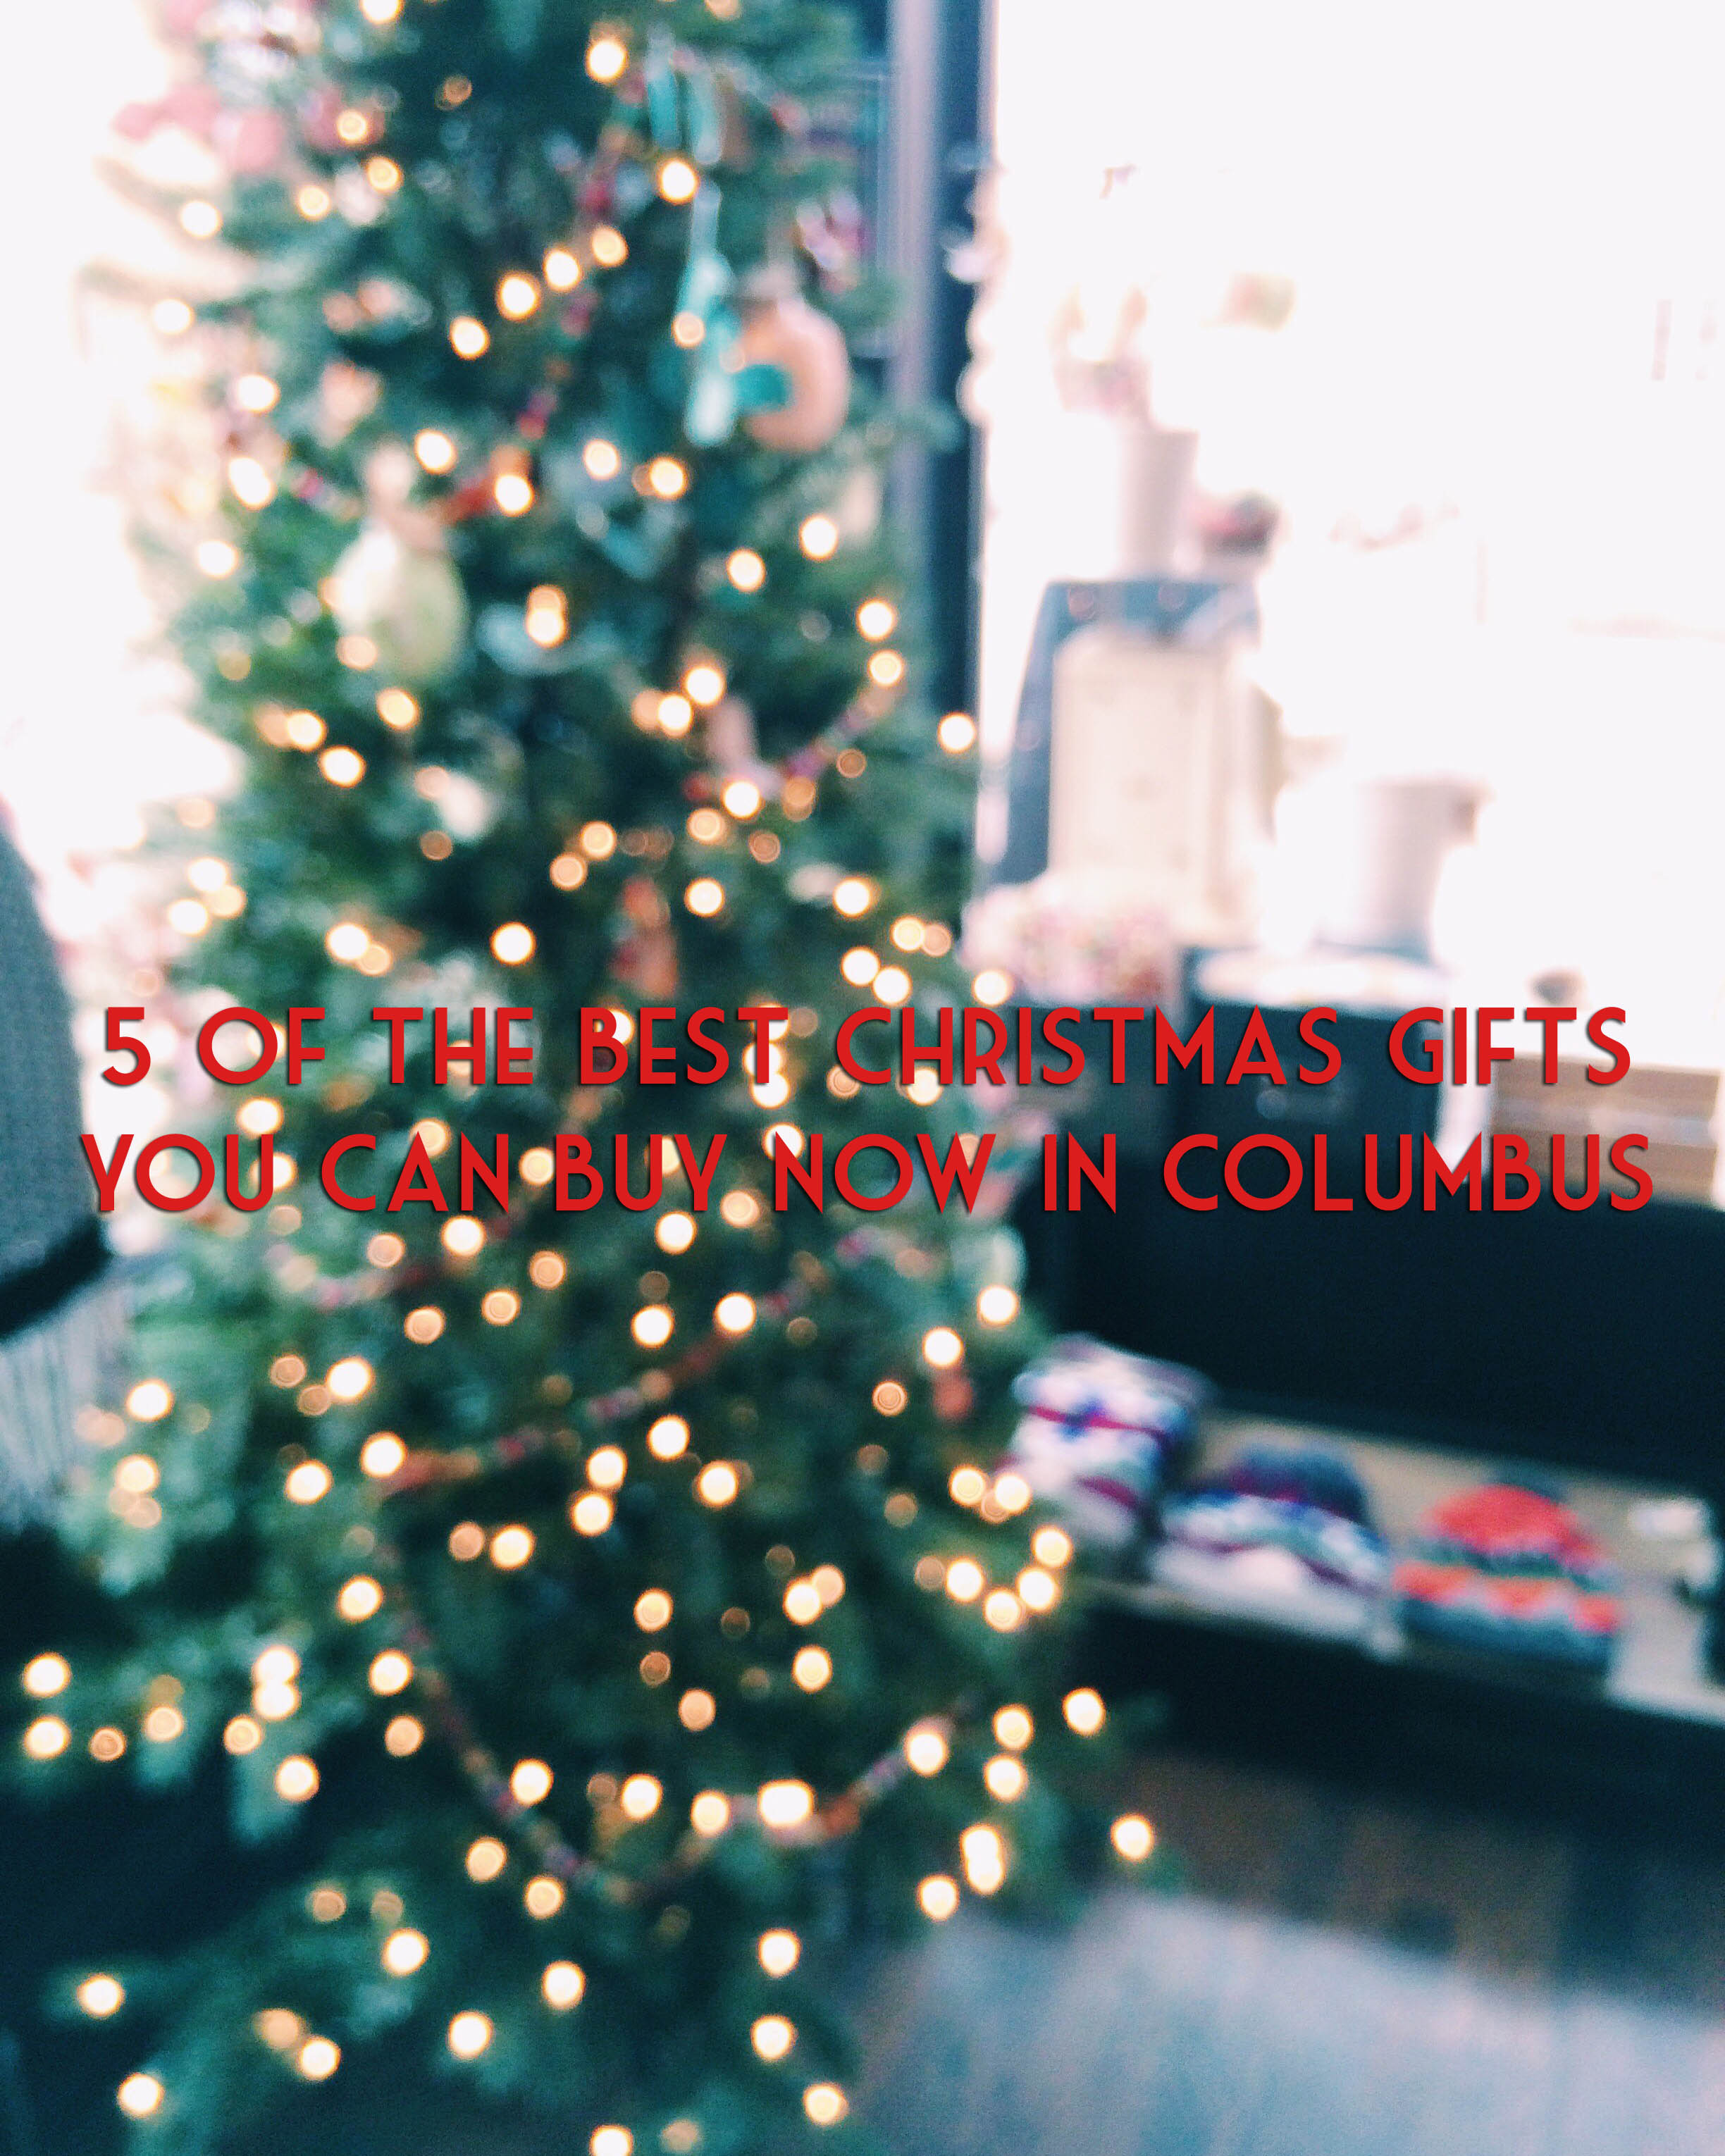 5 of the best Christmas gifts you can buy now in Columbus (without hitting the mall!)